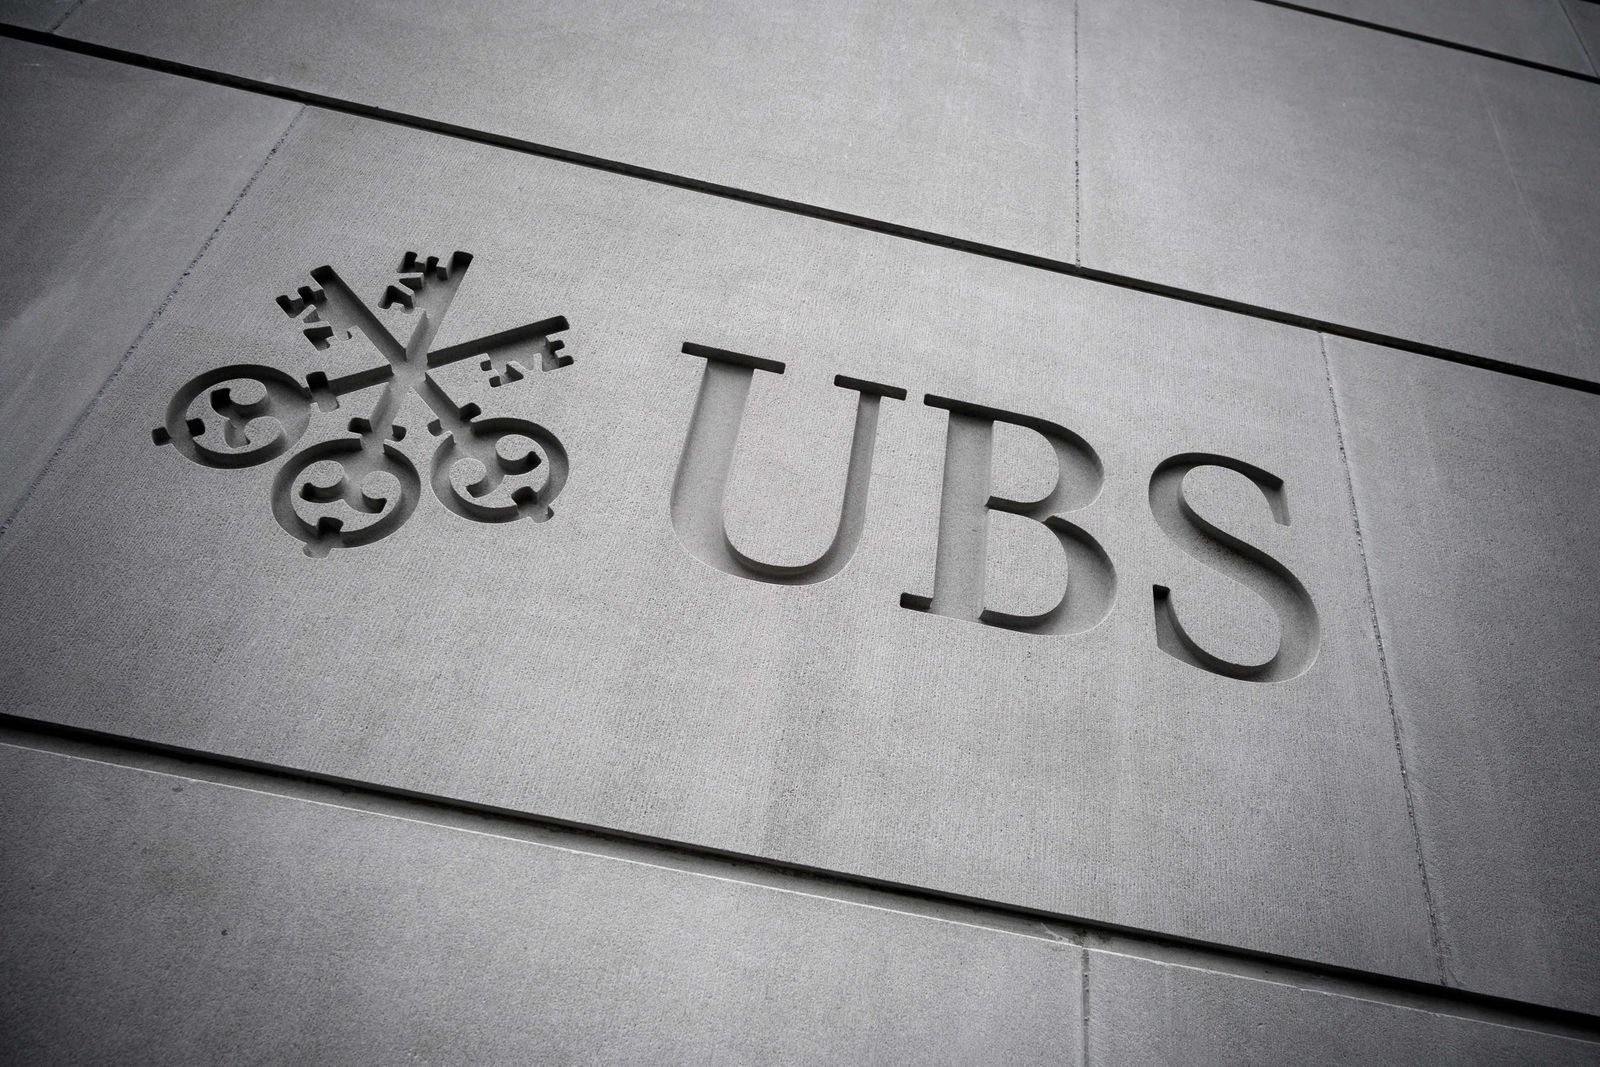 FILES-SWITZERLAND-BANKING-UBS-TRIAL